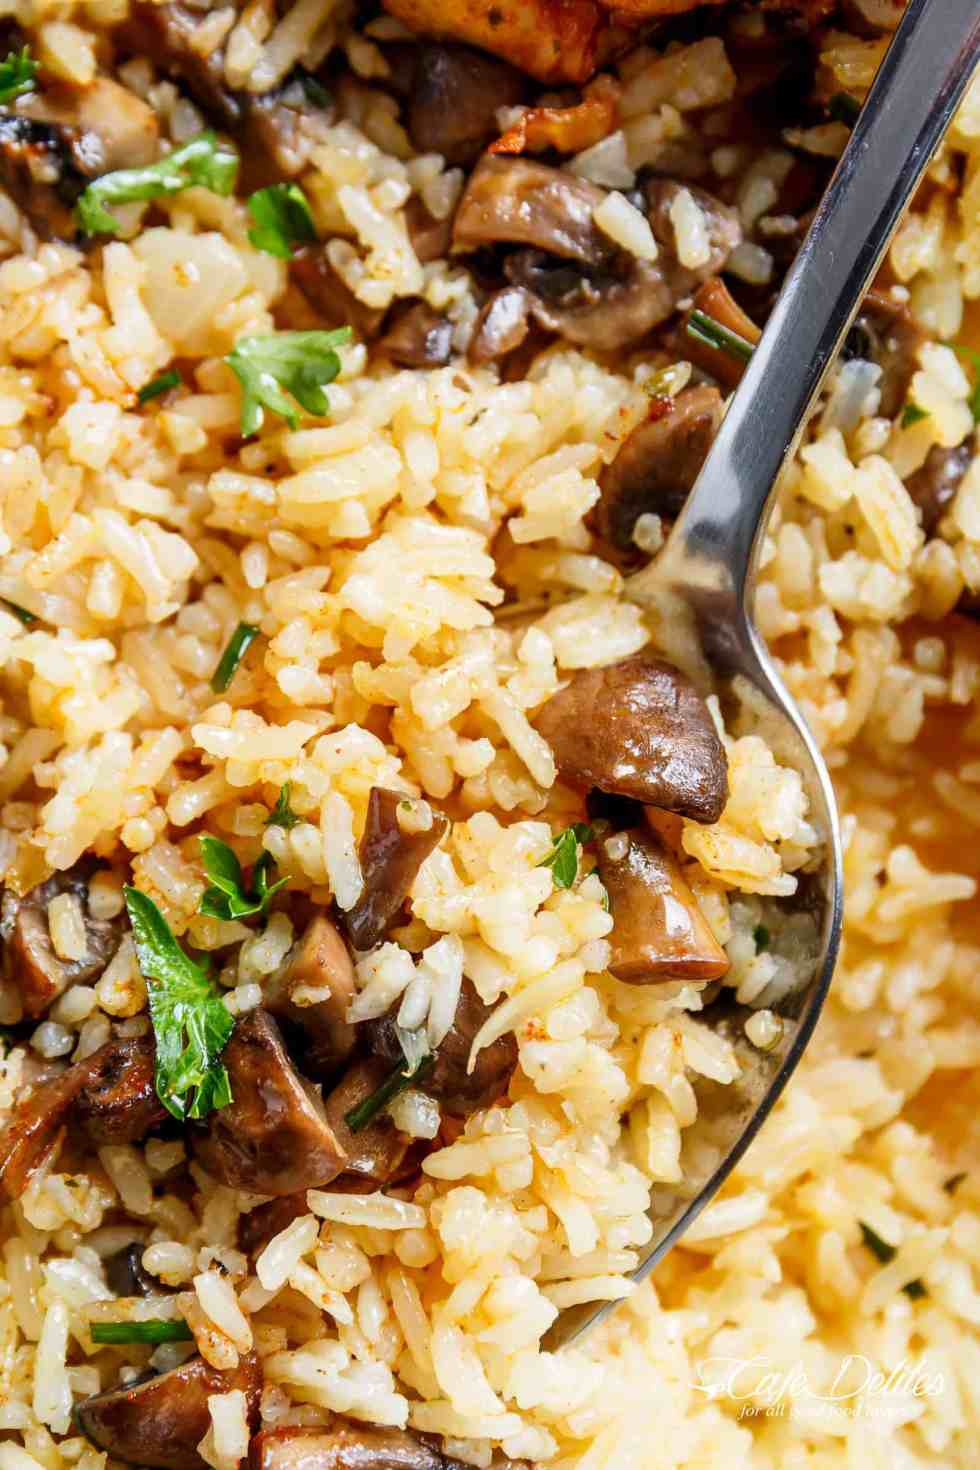 Mushroom Rice For Oven Baked Chicken and Rice   cafedelites.com